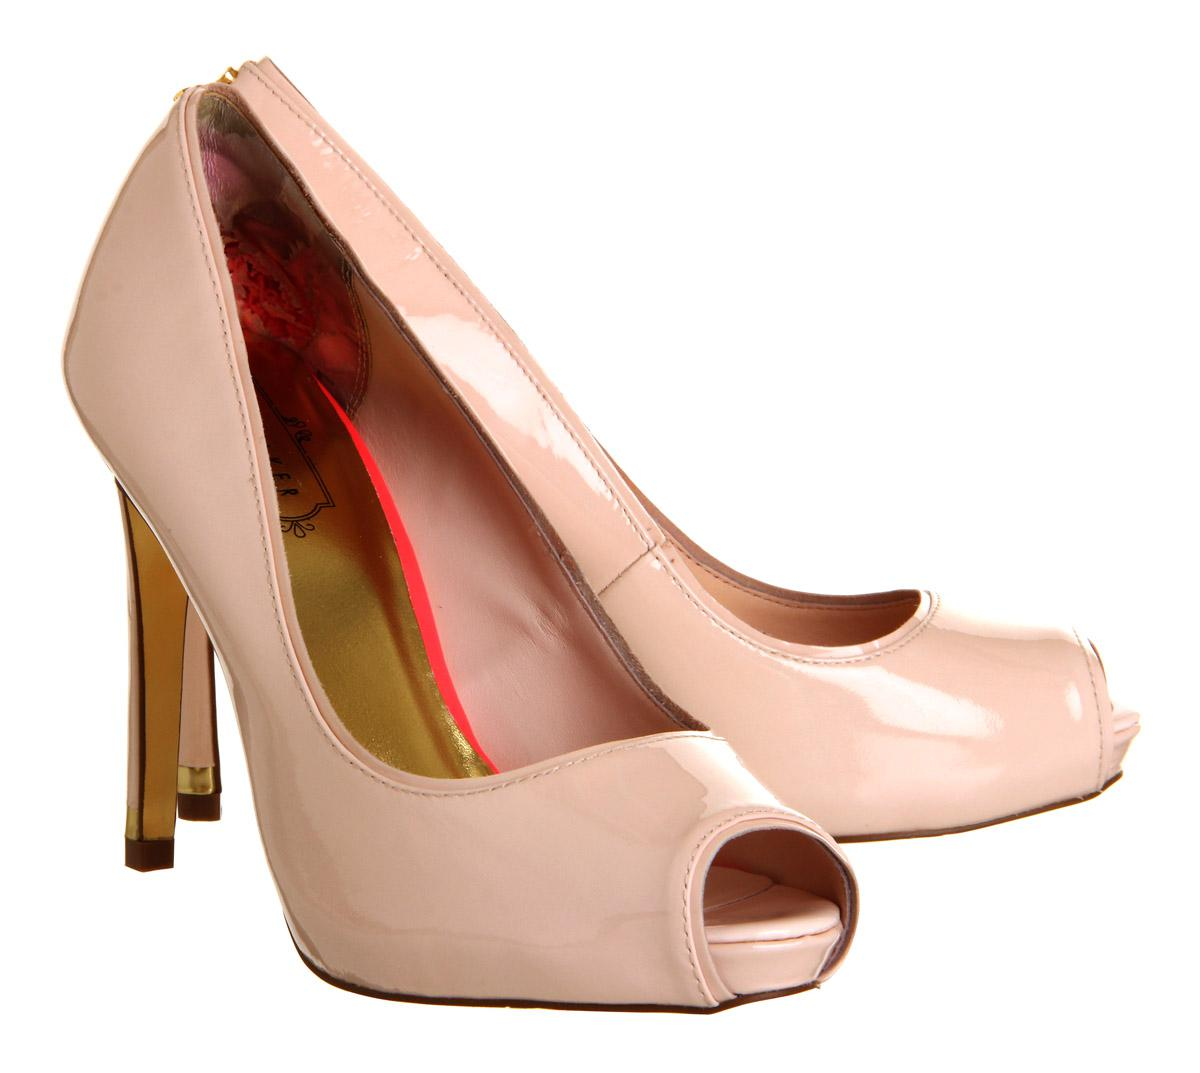 615184271538 Lyst - Ted Baker Glister High Heel in Pink